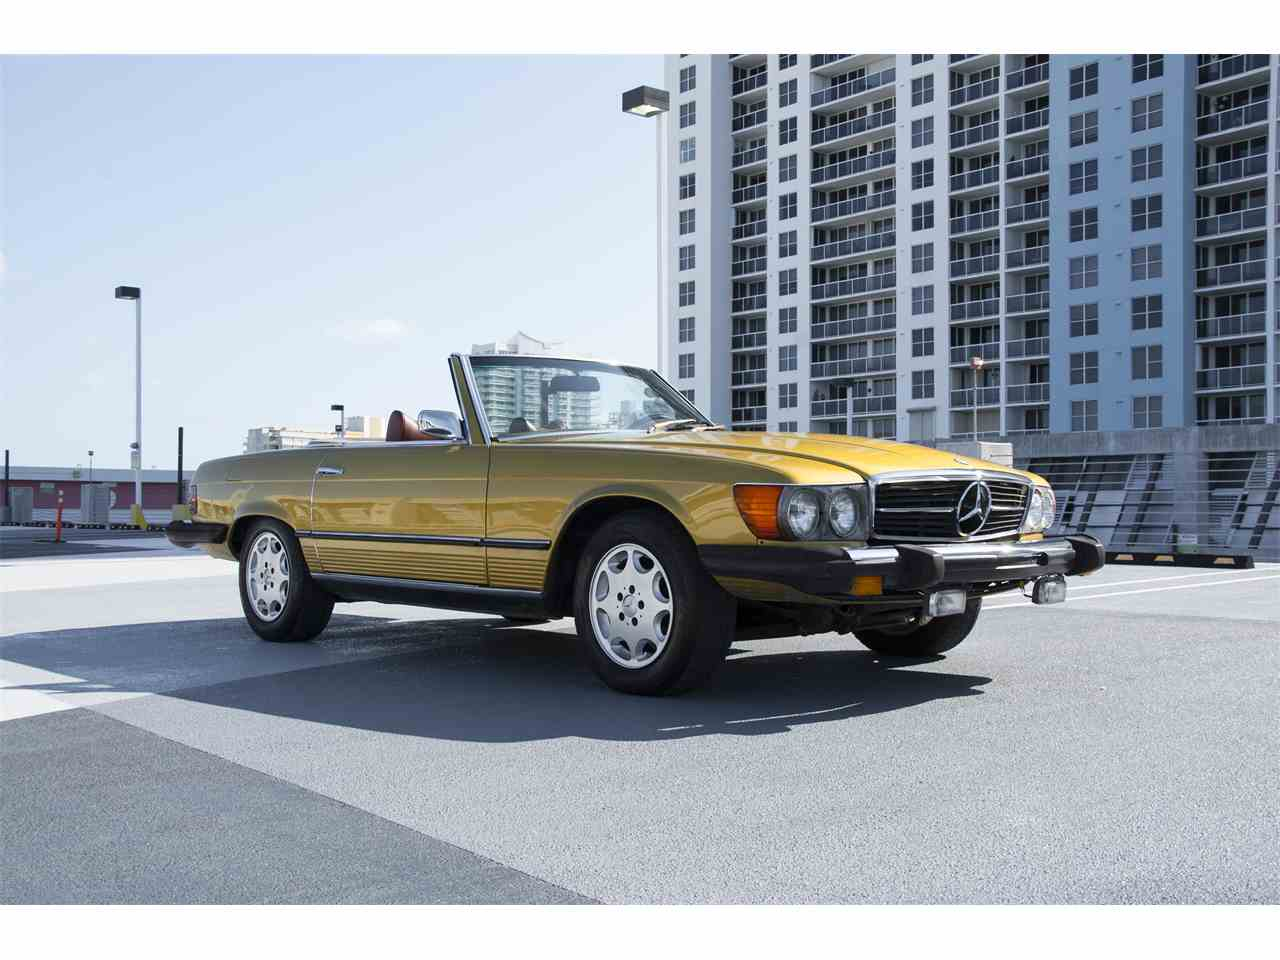 Large Picture of '74 Mercedes-Benz 450SL - $13,000.00 Offered by a Private Seller - ISJK